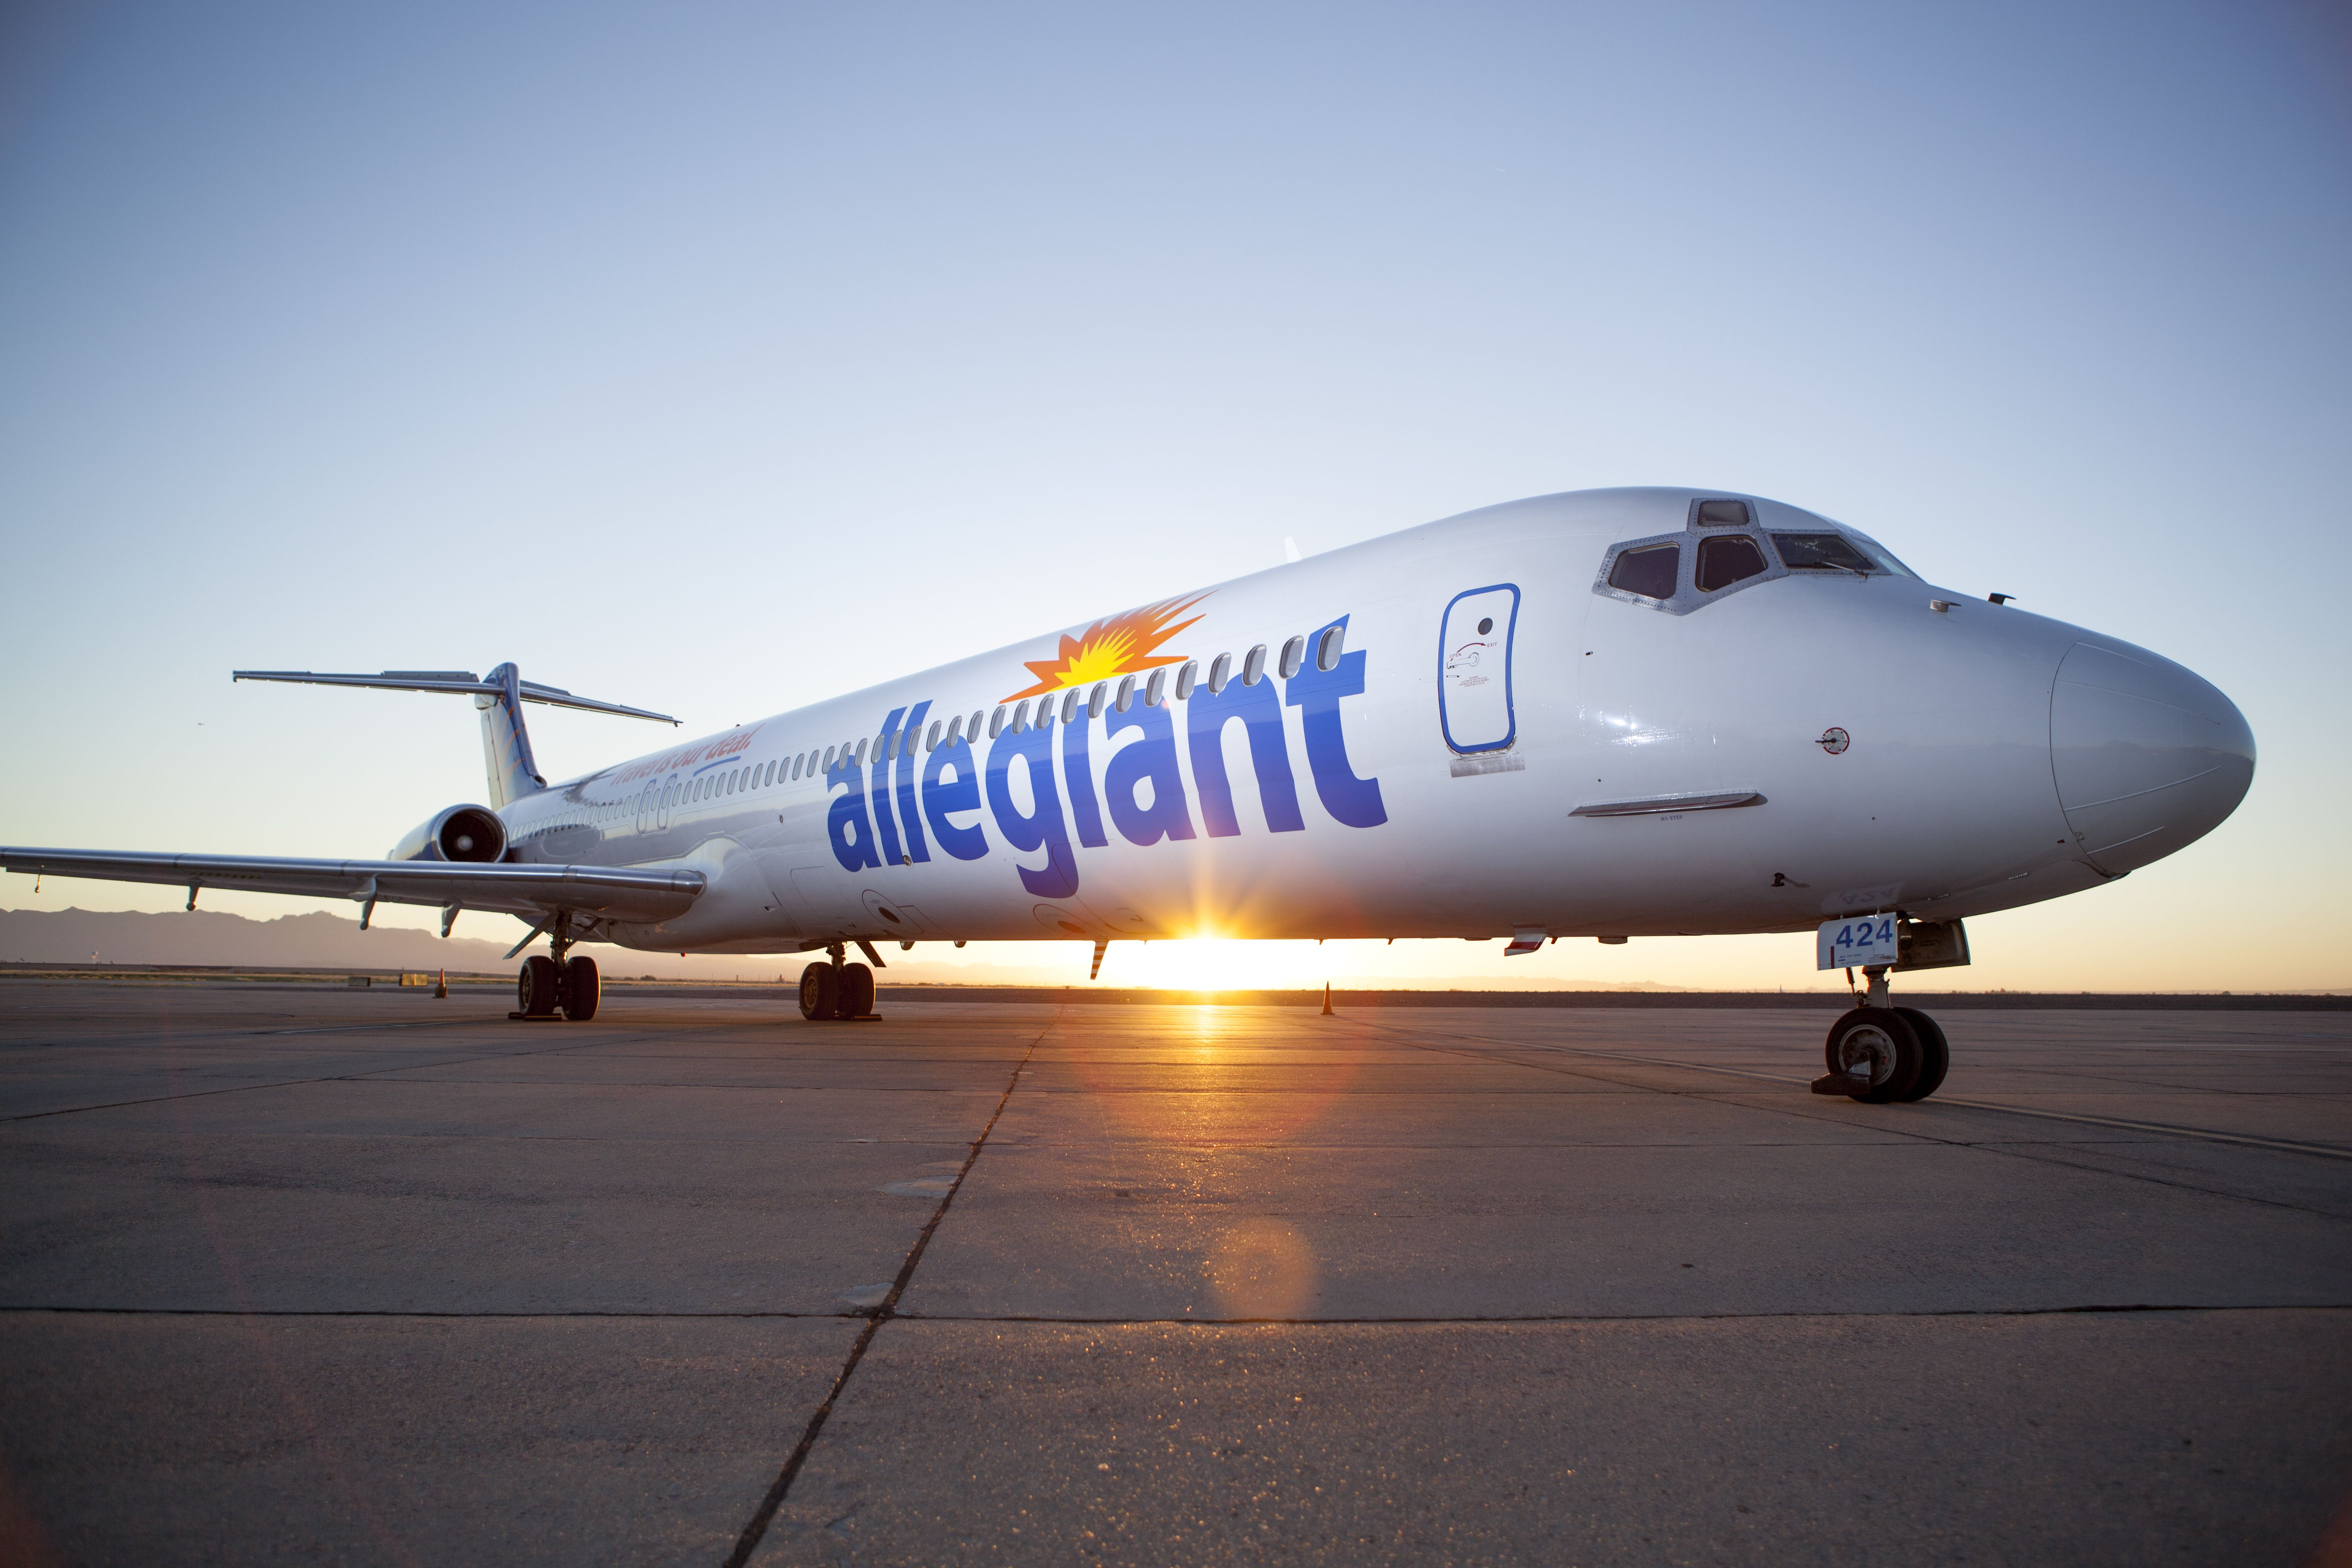 Book your trip with Allegiant Airlines today! With low